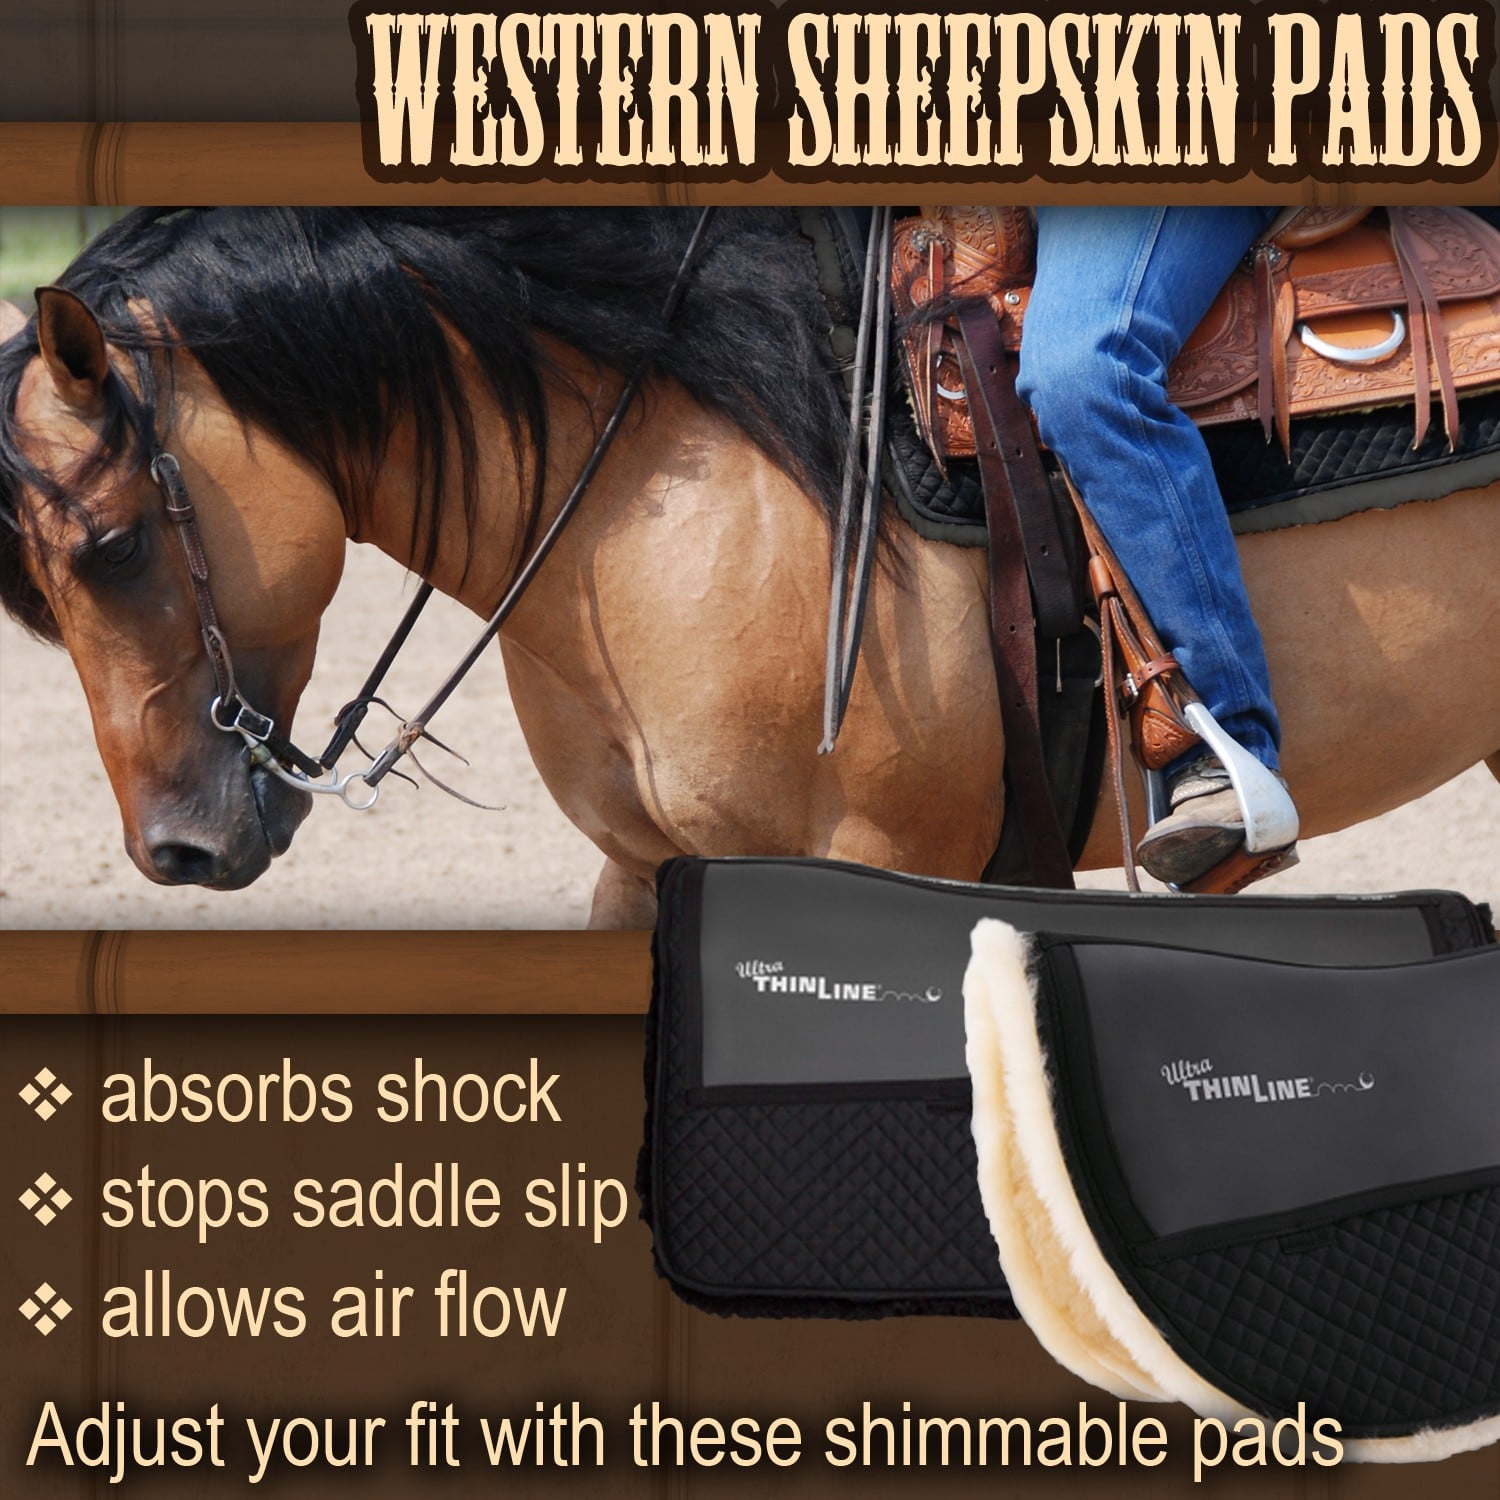 Western sheep skin pads